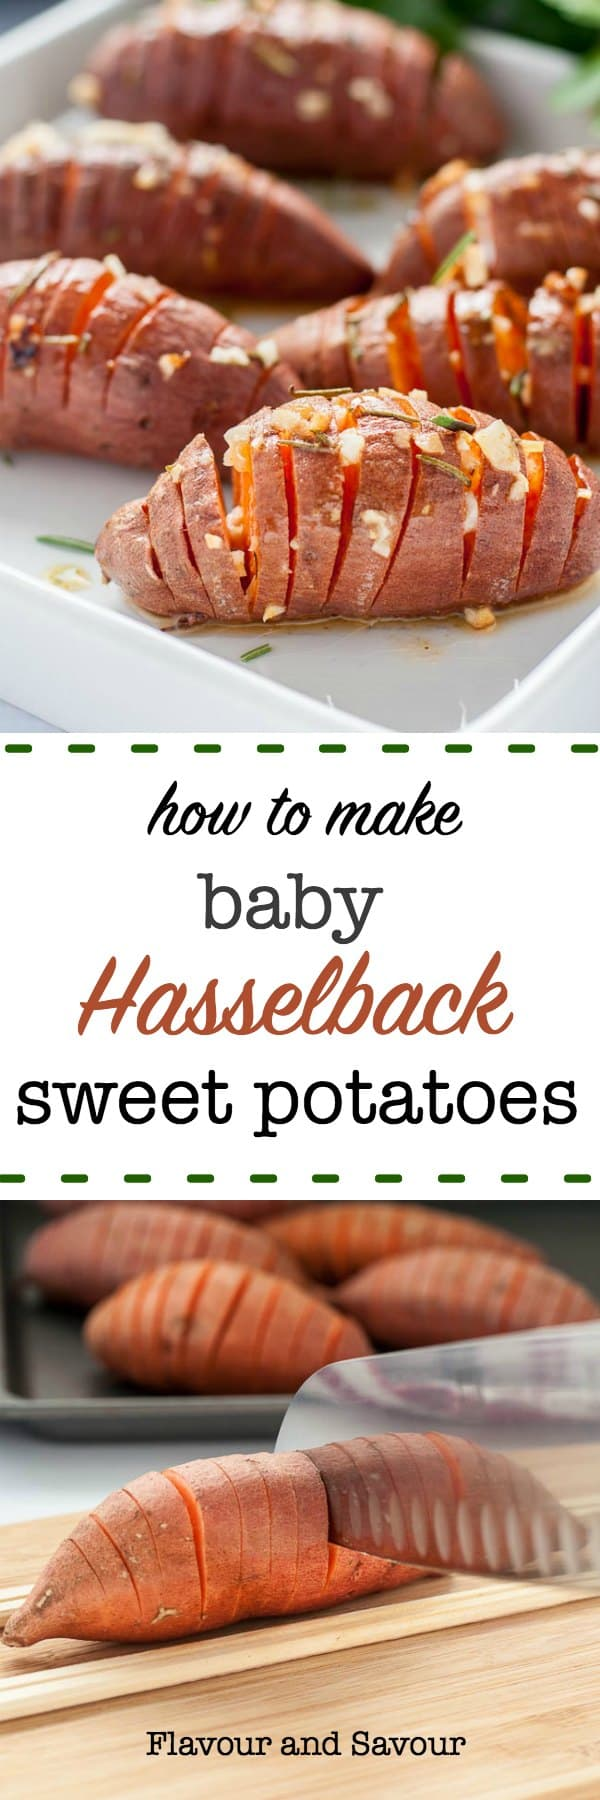 Baby Hasselback Sweet Potatoes with Garlic Herb Butter make a striking side dish. Slice potatoes thinly keeping the base intact, fan out accordion-style, and baste with garlic herb butter. #baby #mini #sweet_potatoes #Hasselback #garlic_butter